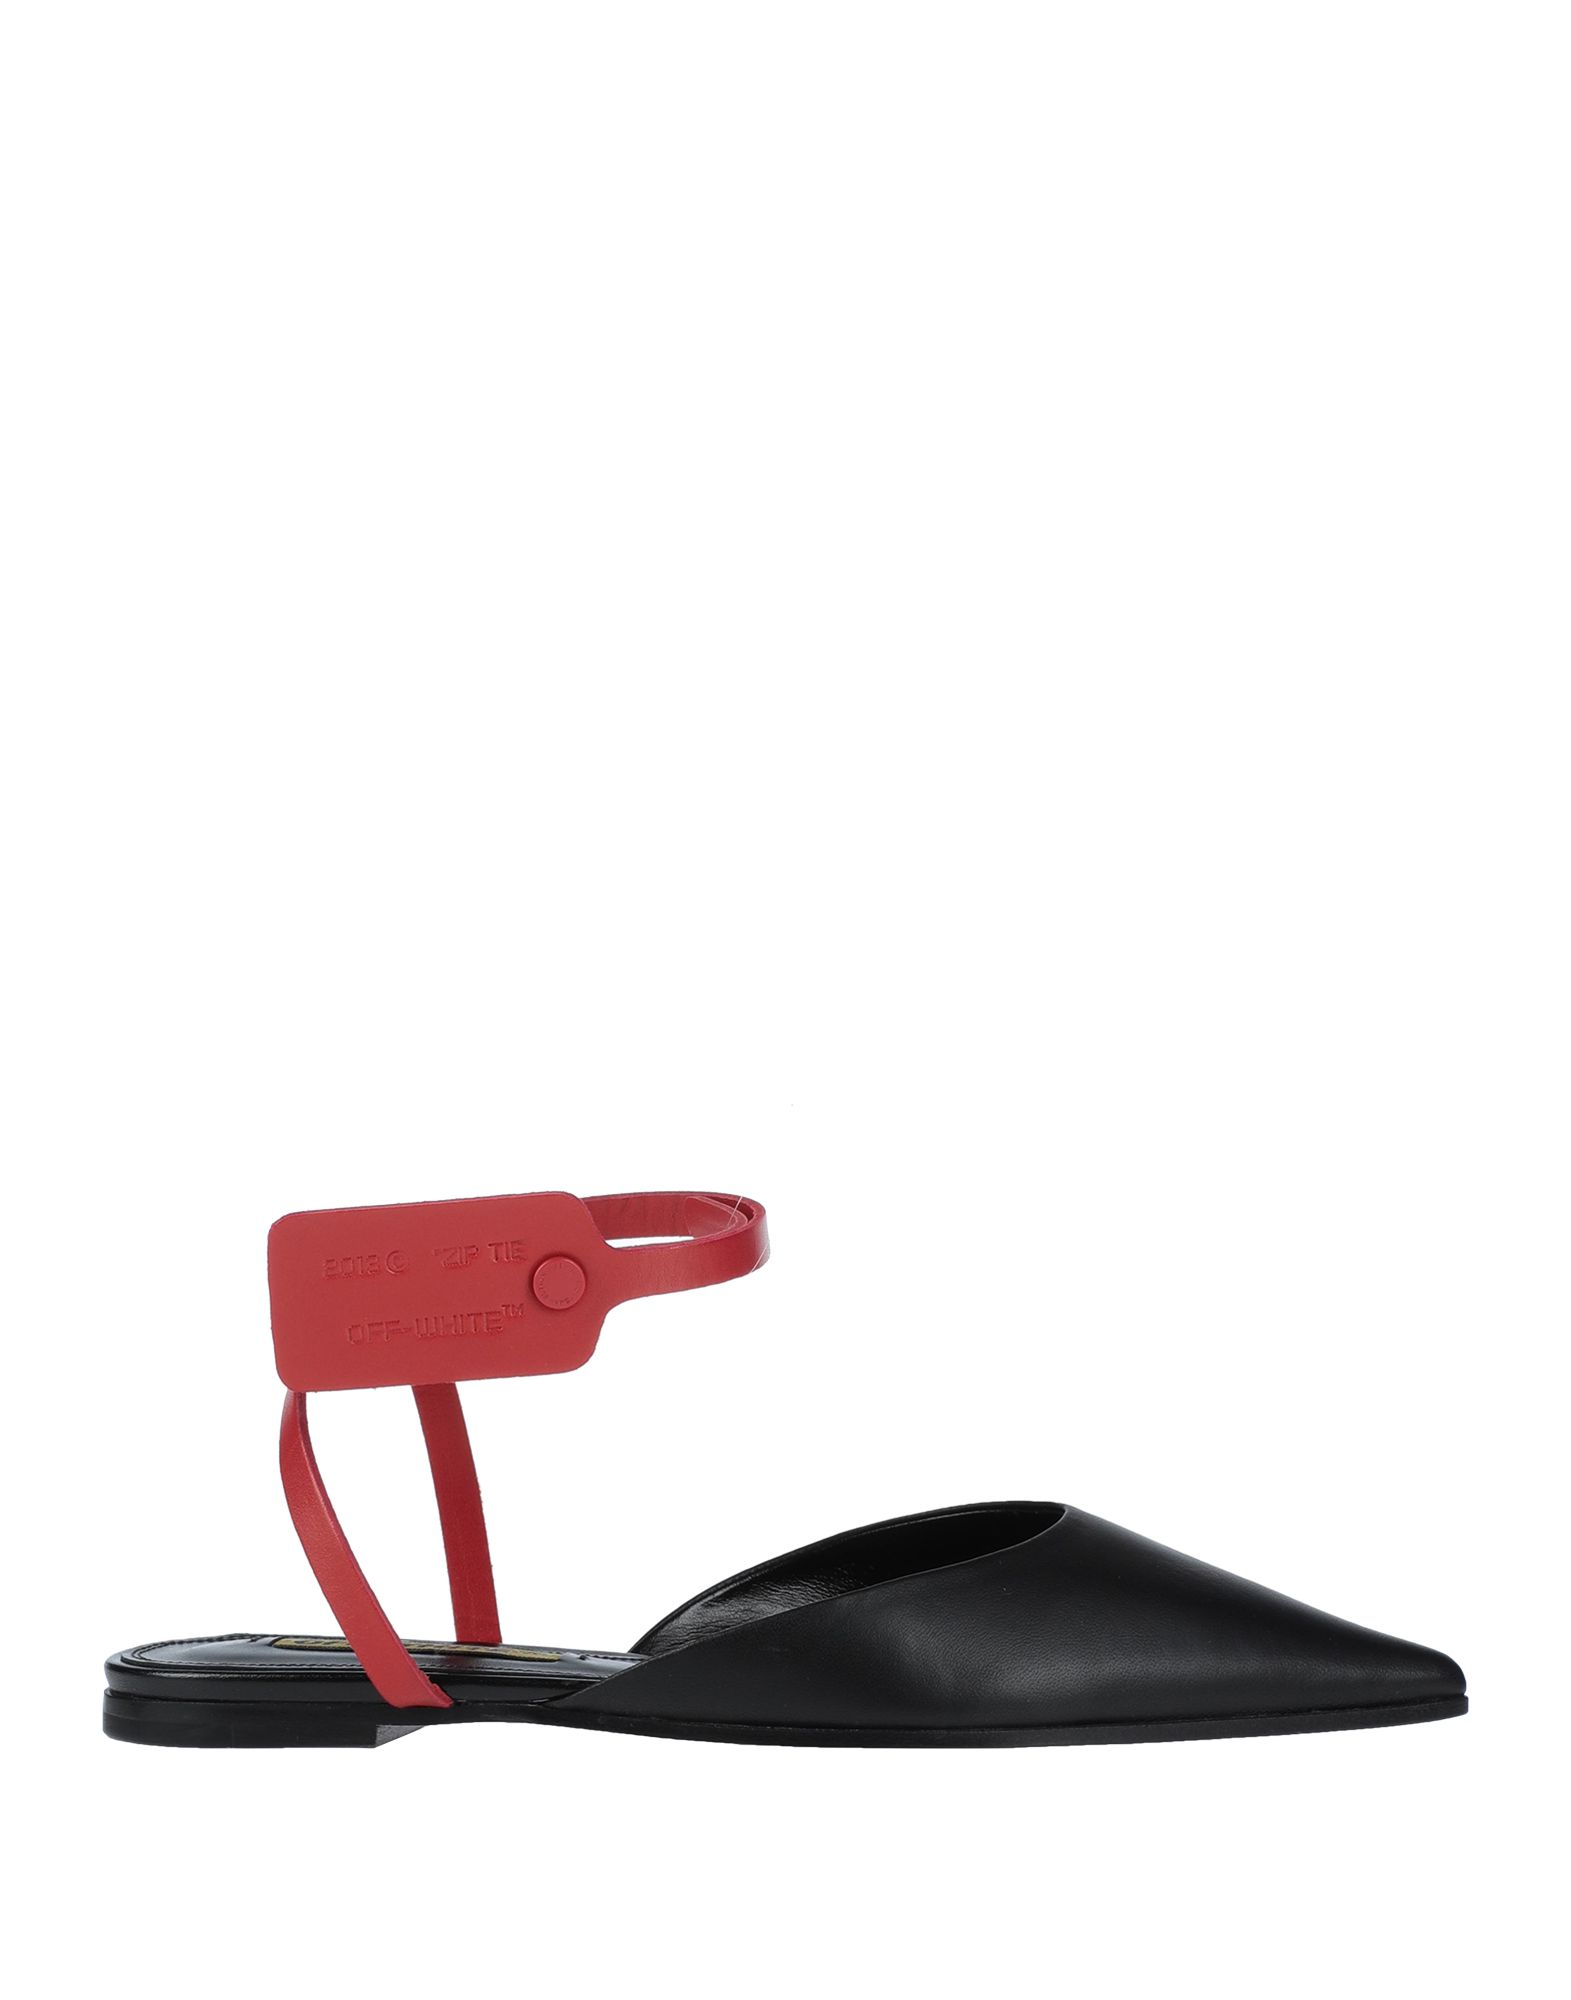 OFF-WHITE™ Ballet flats. polished leather, logo, two-tone, wrapping straps closure, narrow toeline, flat, leather lining, leather sole, small sized, contains non-textile parts of animal origin. Soft Leather